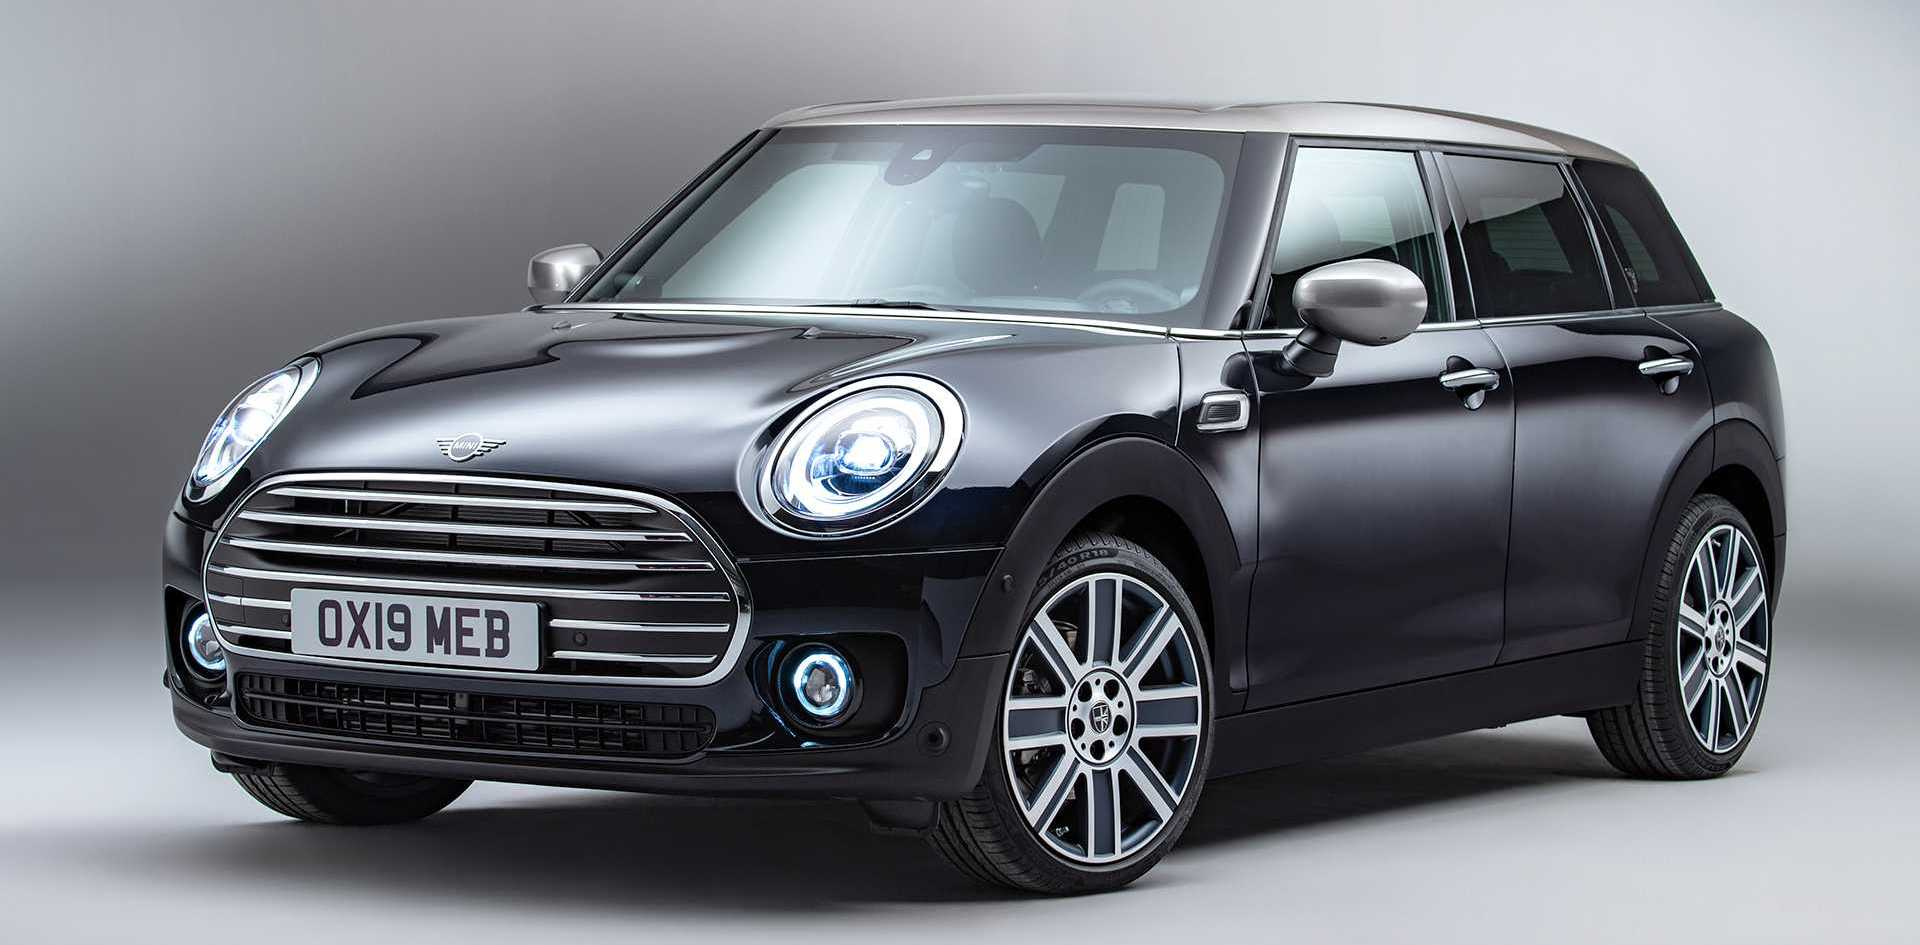 Mini Clubman Refresh Debuts With New Grille And Headlights